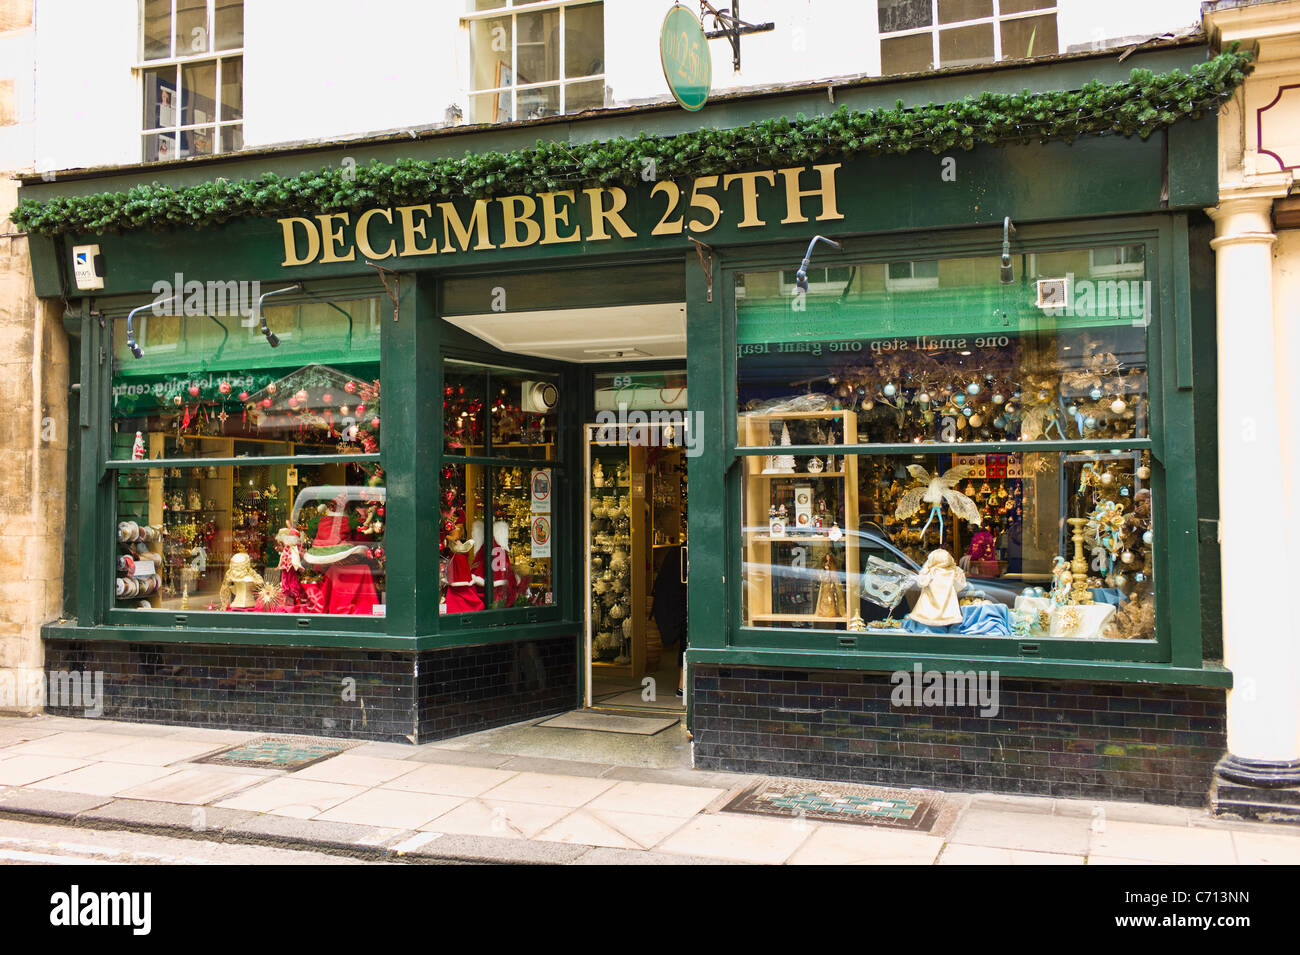 A Specialist Shop In Bath Devoted To Christmas Decorations And Associated  Goods